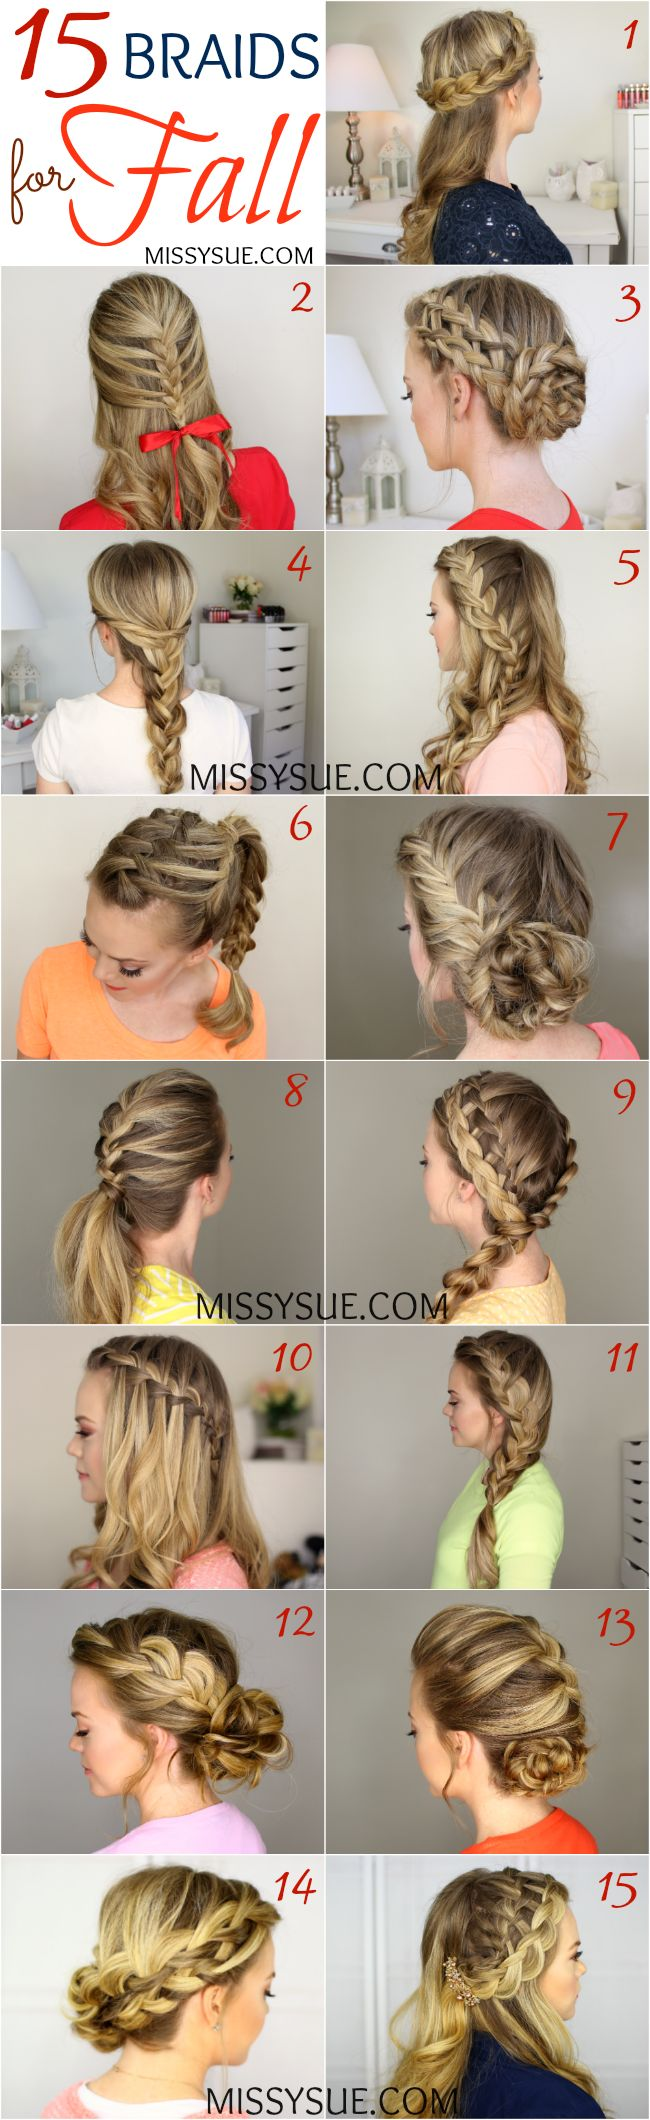 cheap sterling silver rings 15 Braids for Fall from MissySue com   love